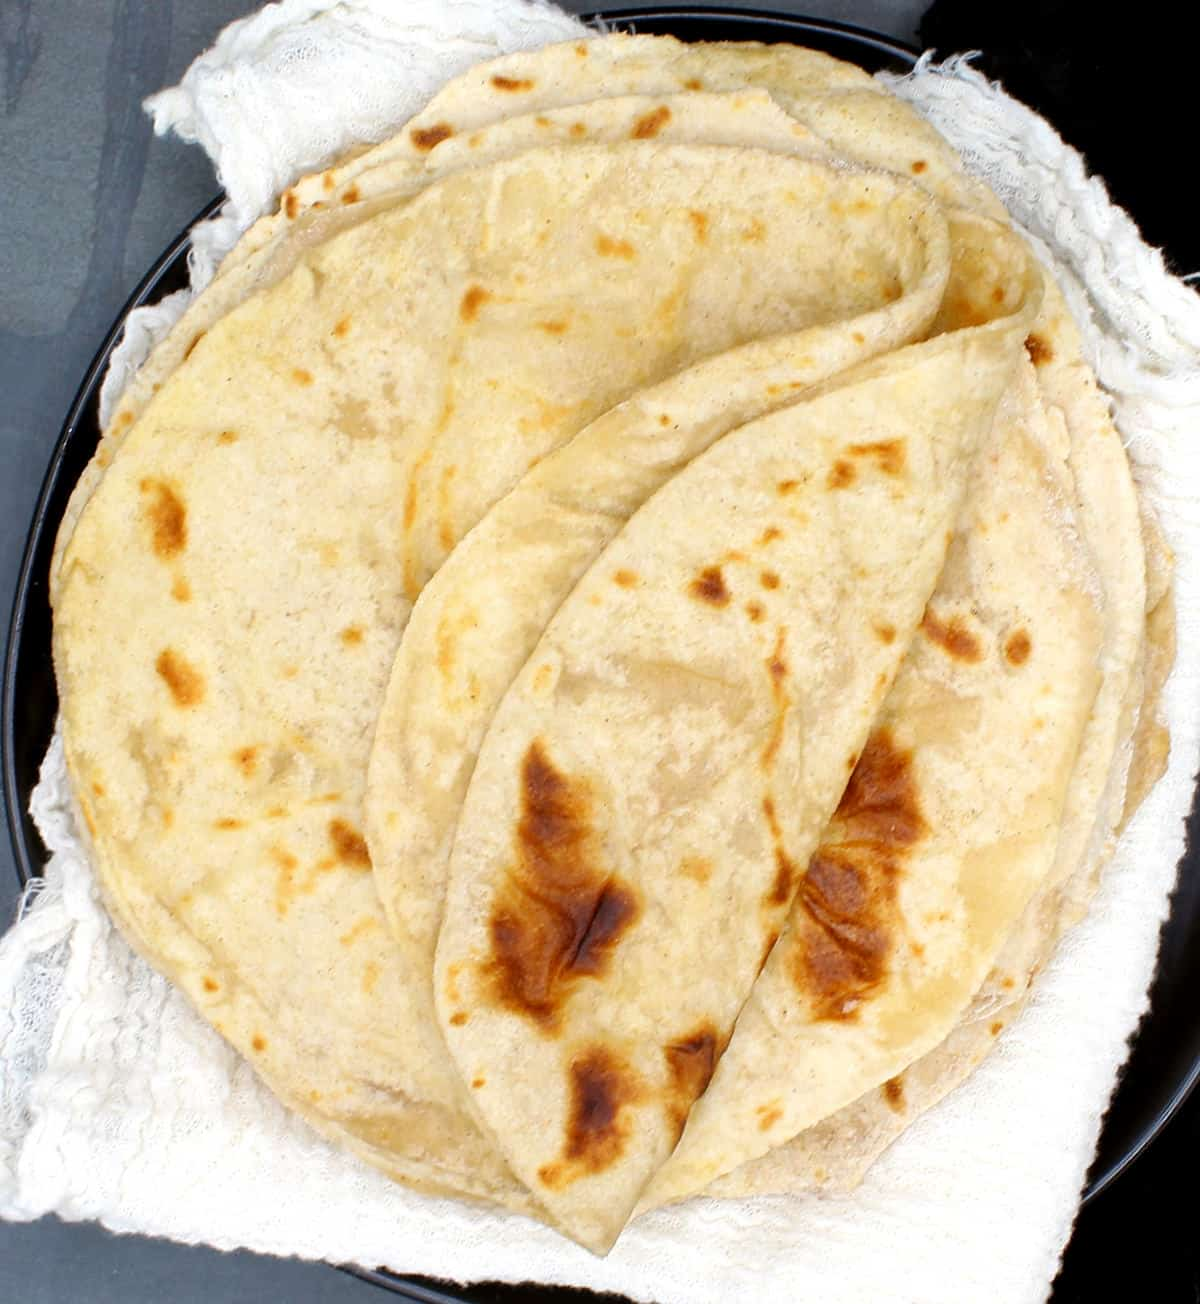 Photo of a stack of soft, pliable, perfect rotis made with sourdough starter on cheesecloth on a black plate.